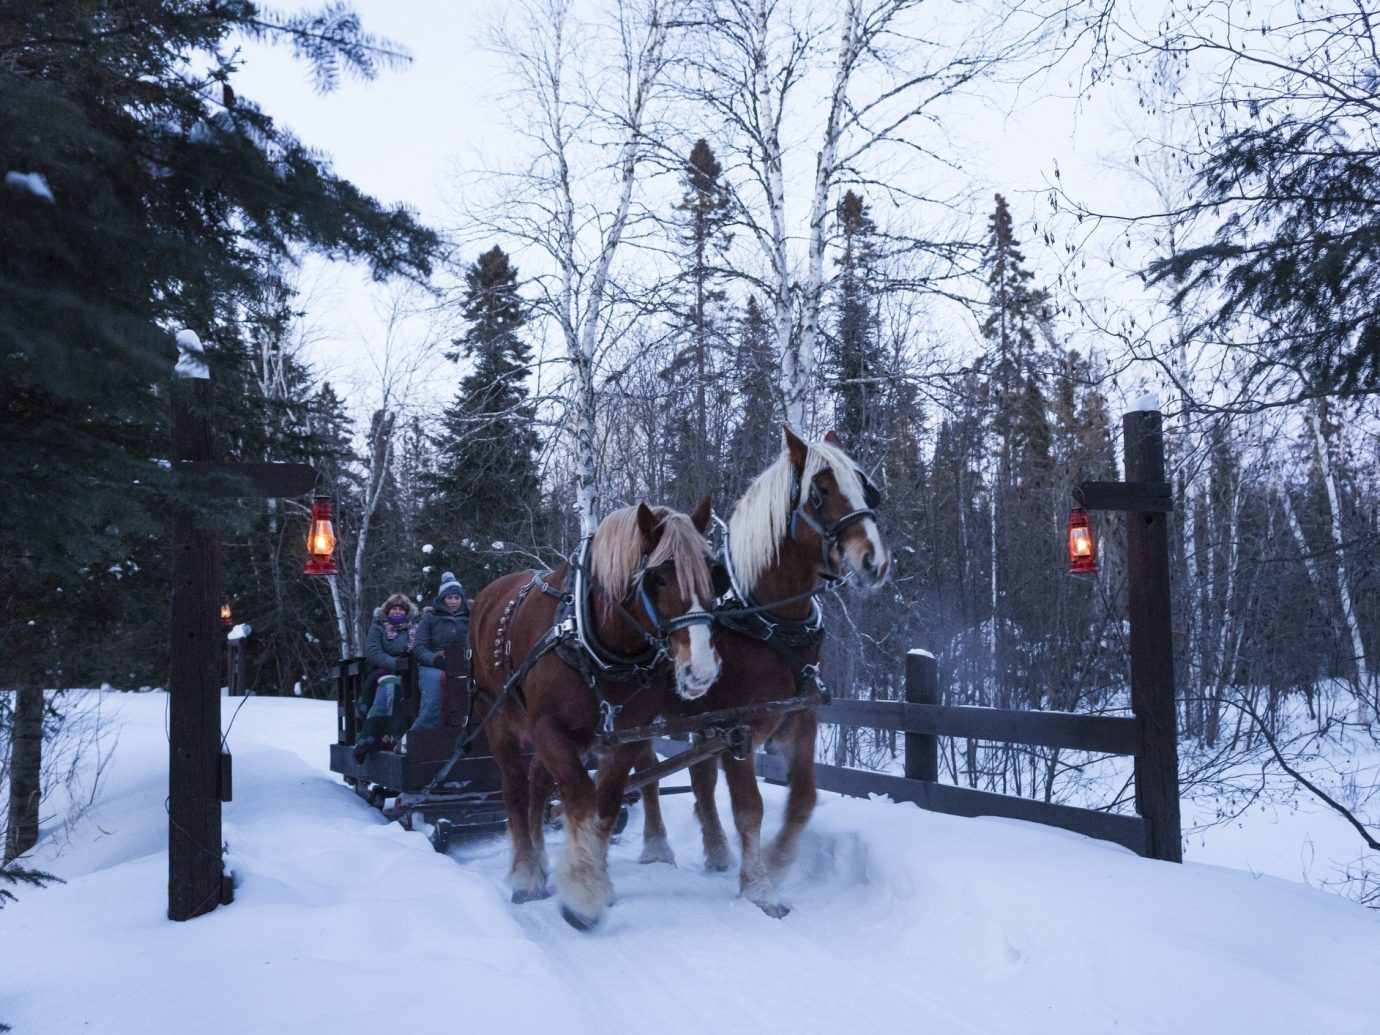 Romance Trip Ideas snow tree outdoor transport Winter sled weather season vehicle animal sports Forest wooded